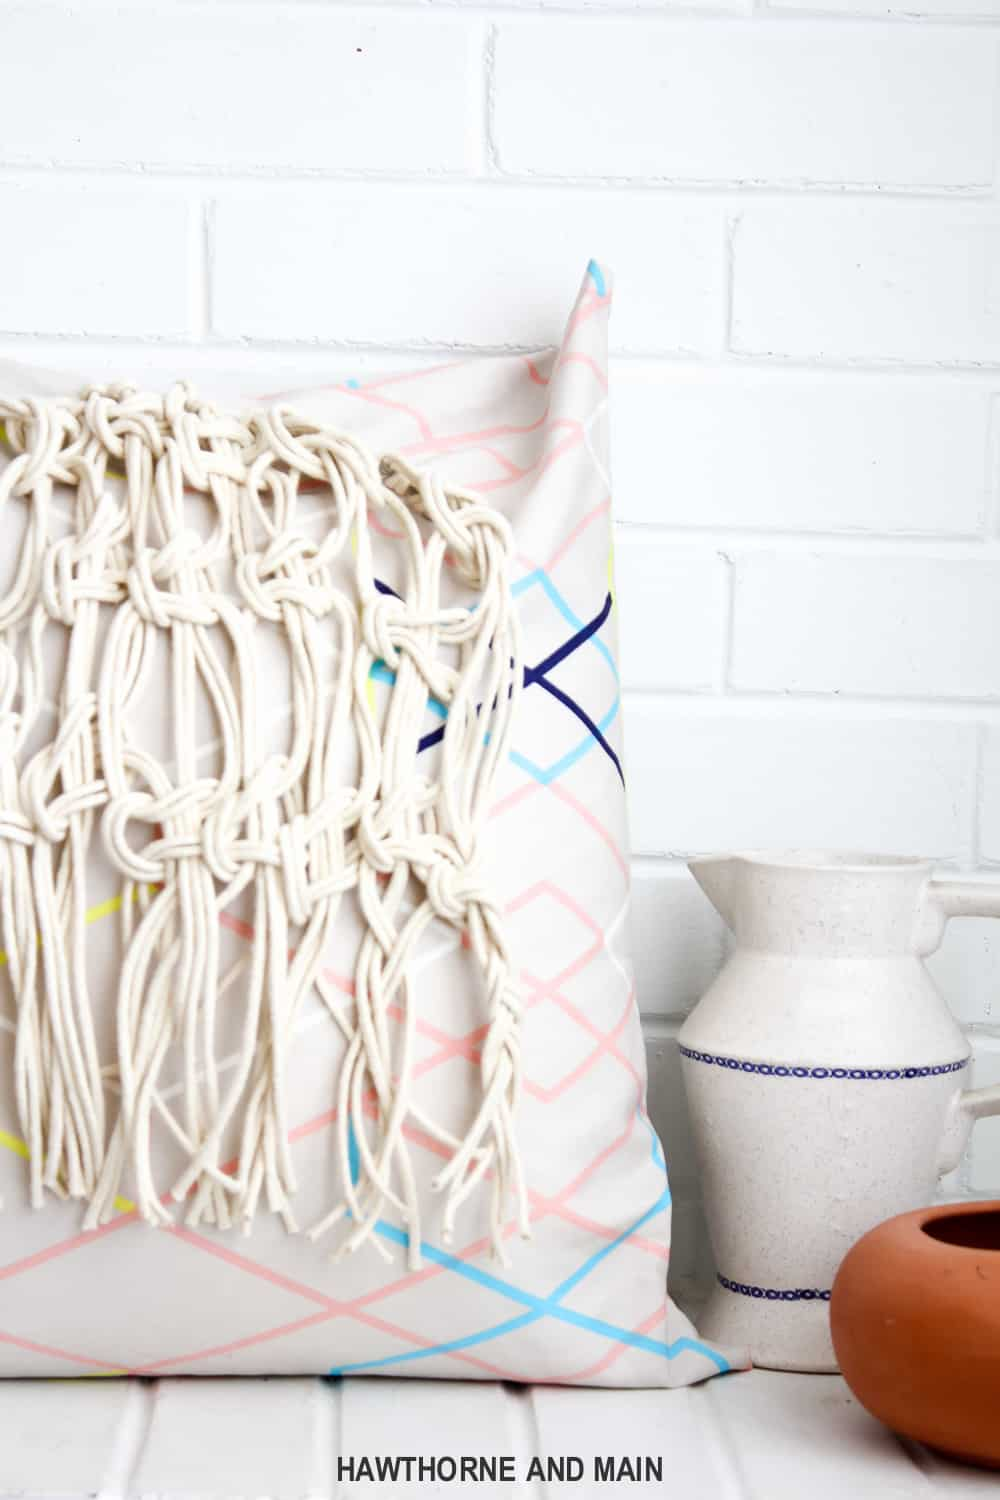 I love this macrame pillow. I am so excited to give this one a try. Macrame looks so fun and you can customize it almost anything!